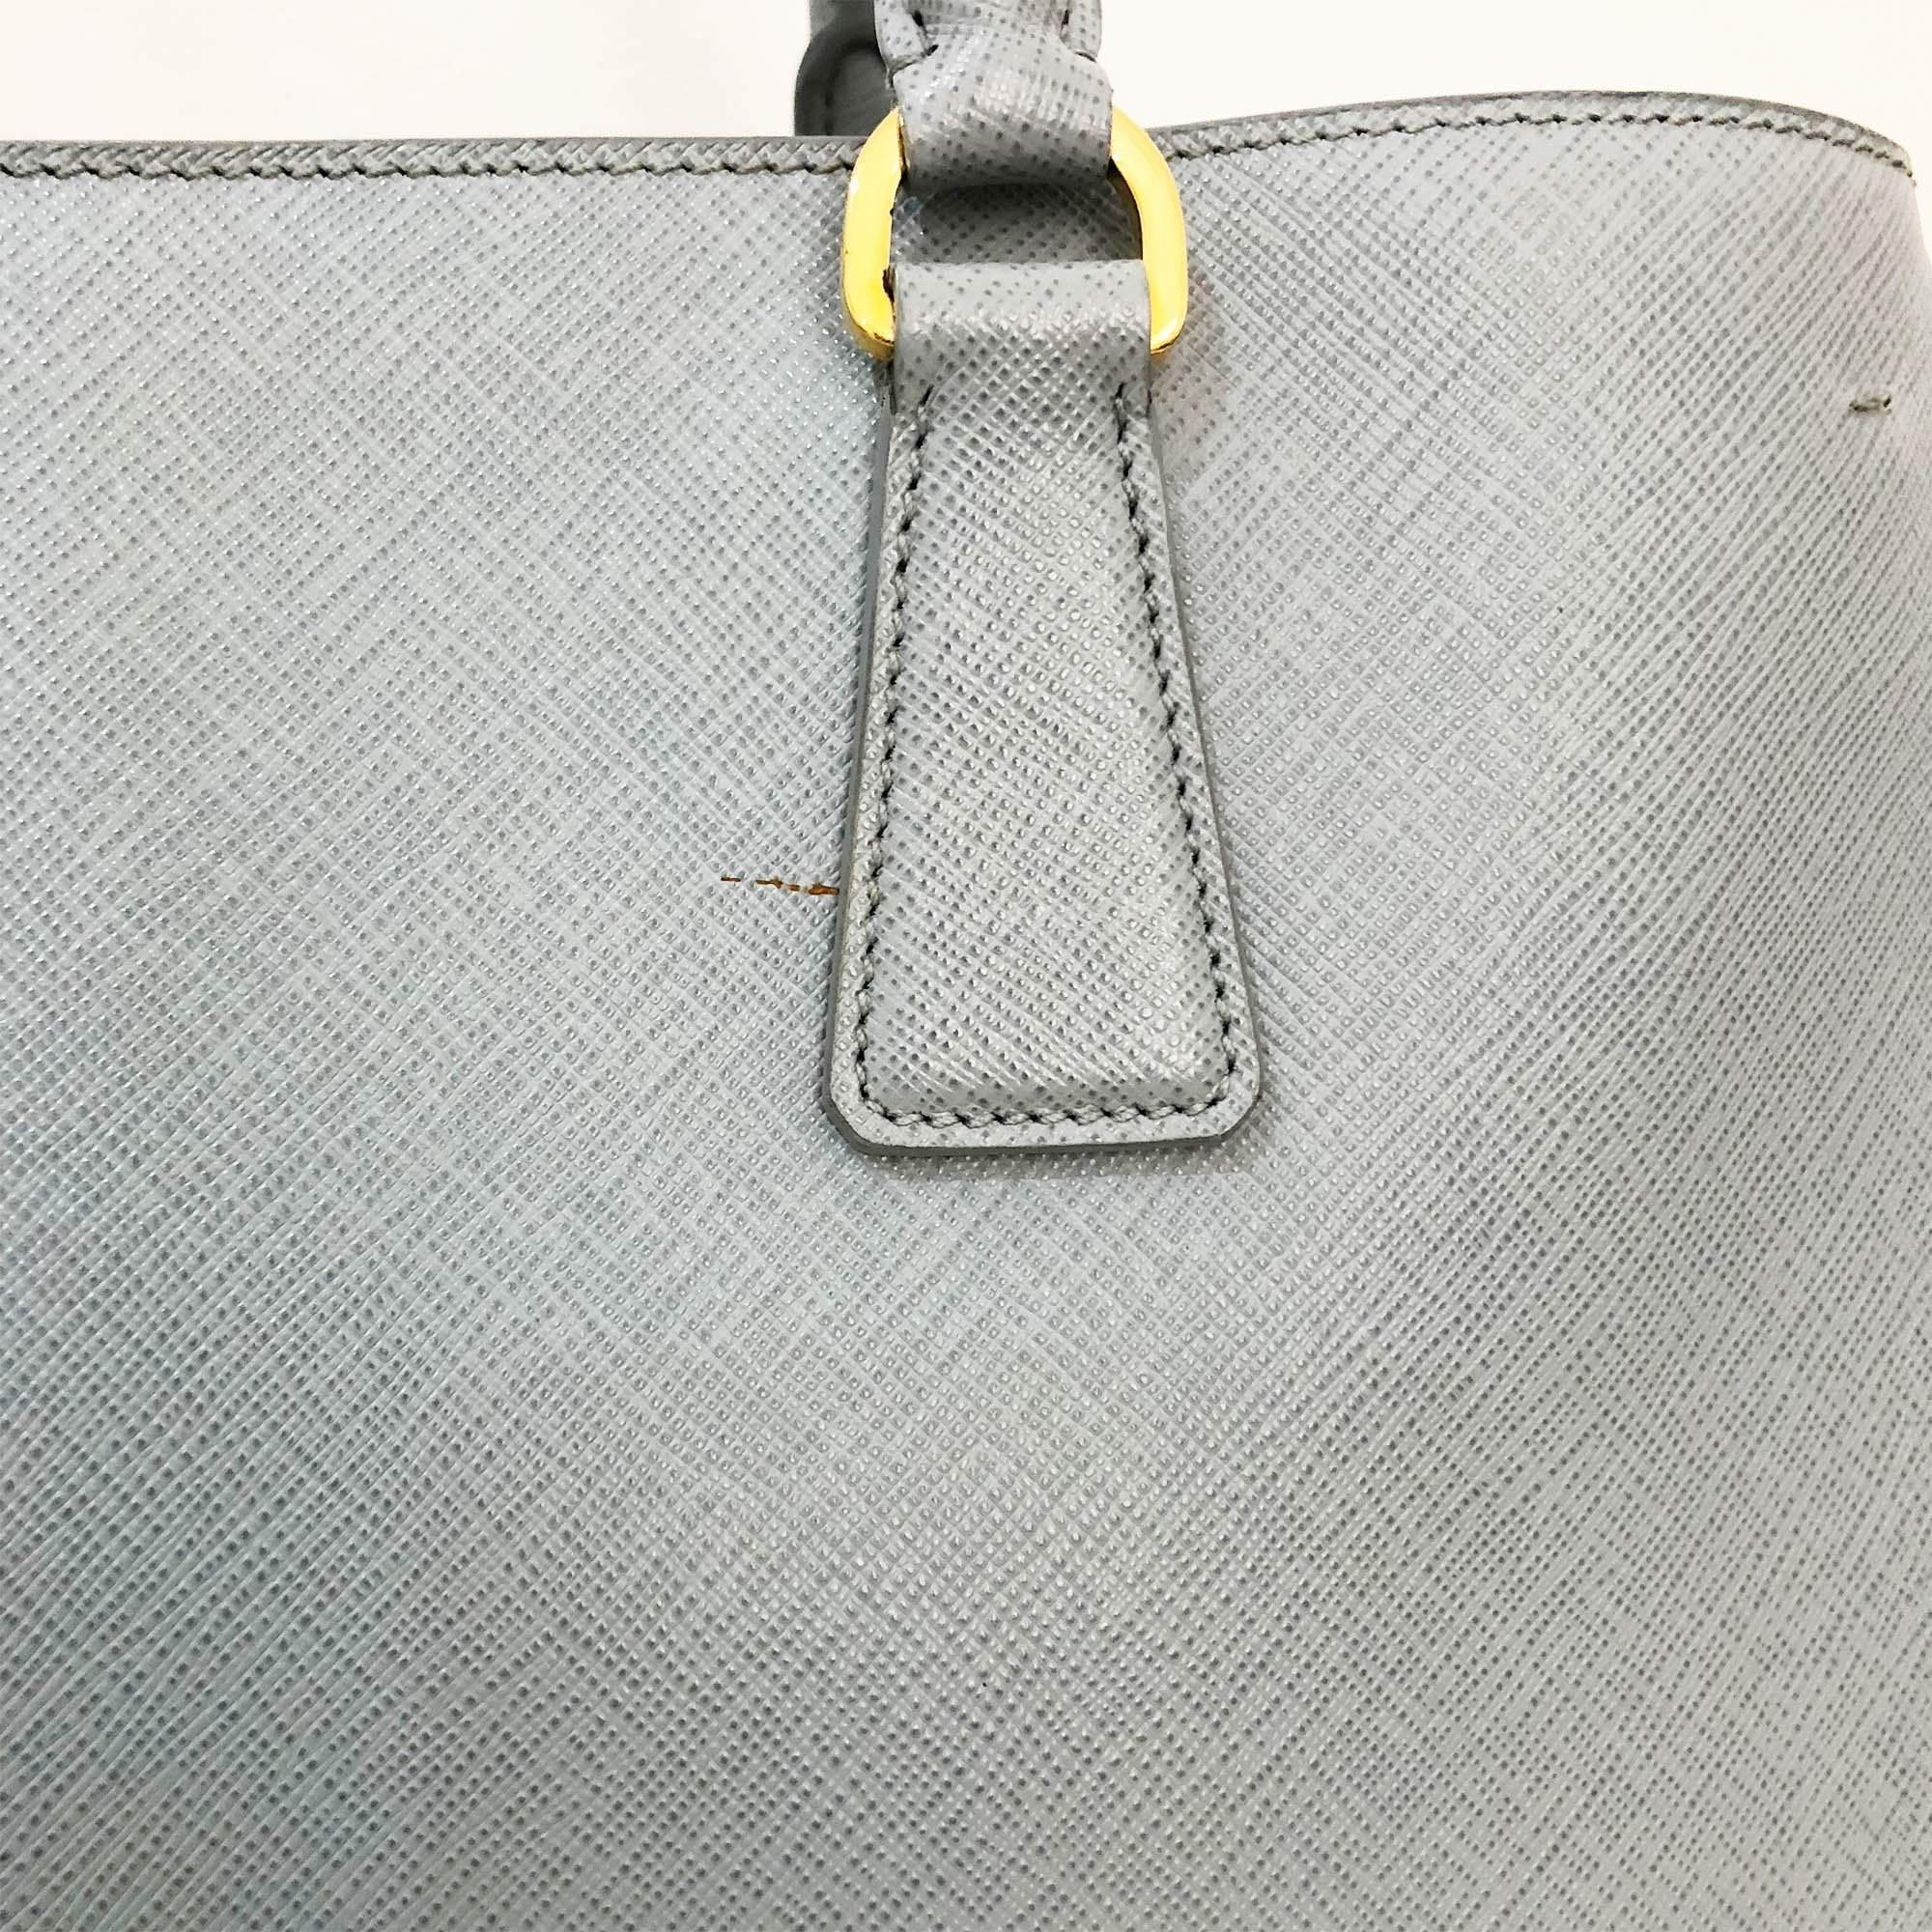 Prada Saffiano Light Blue Bag – Garderobe cd27400651